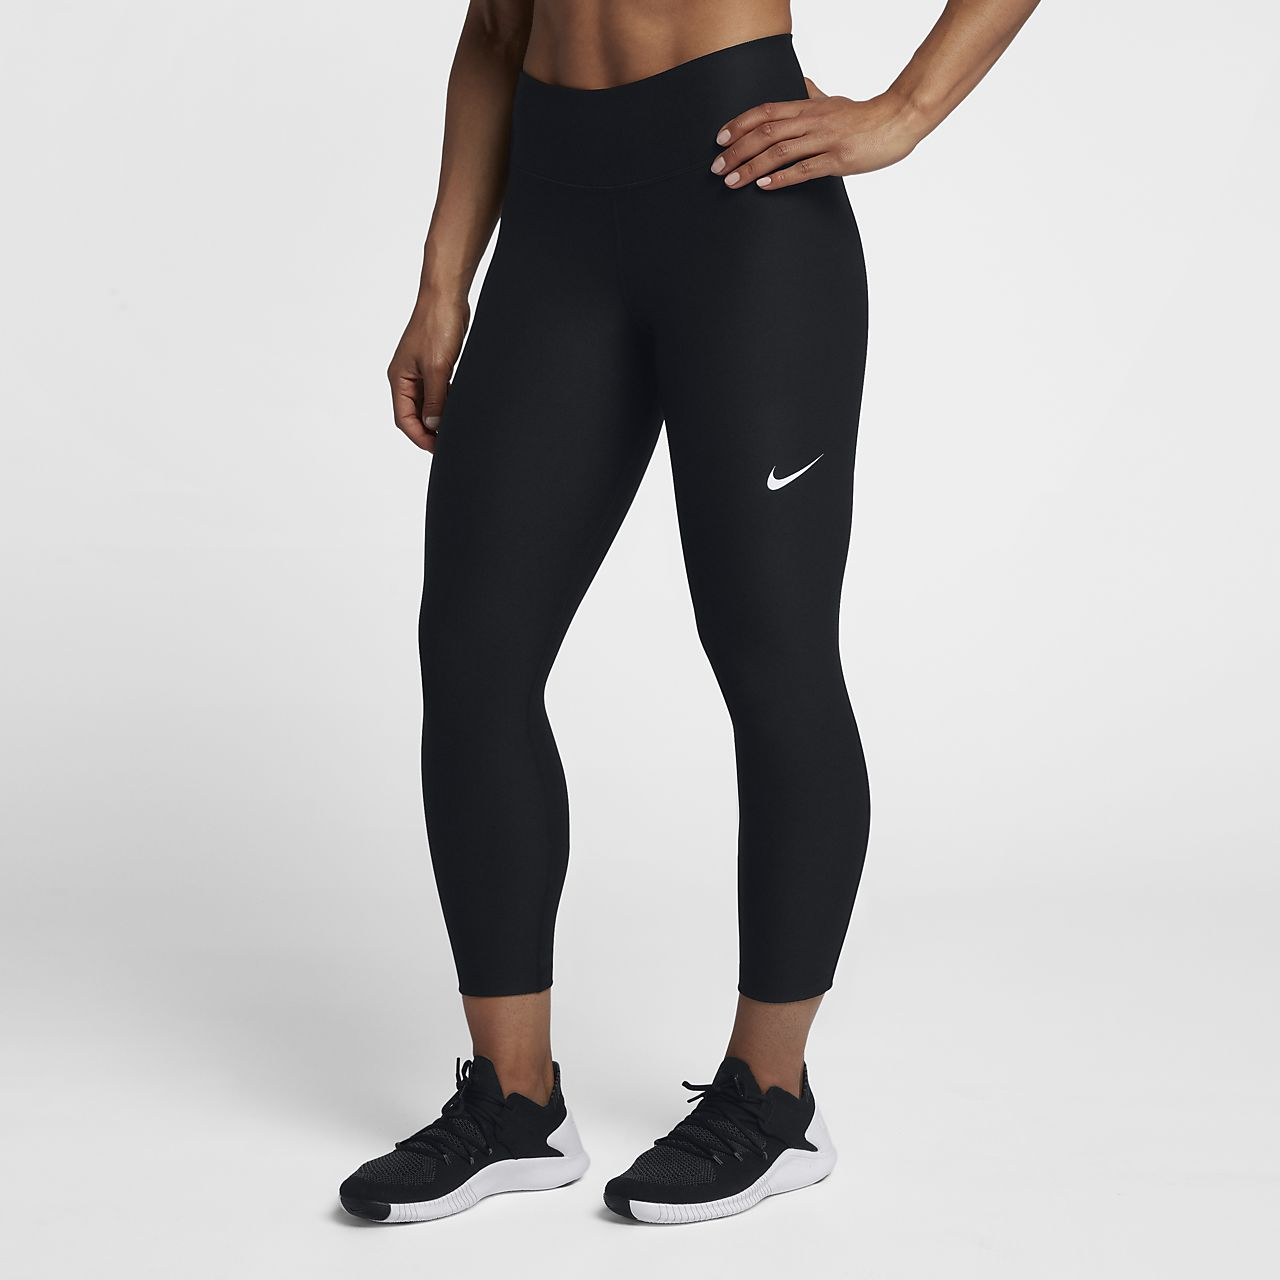 114512190dae3 Nike Power Victory Women's Training Crops. Nike.com AE